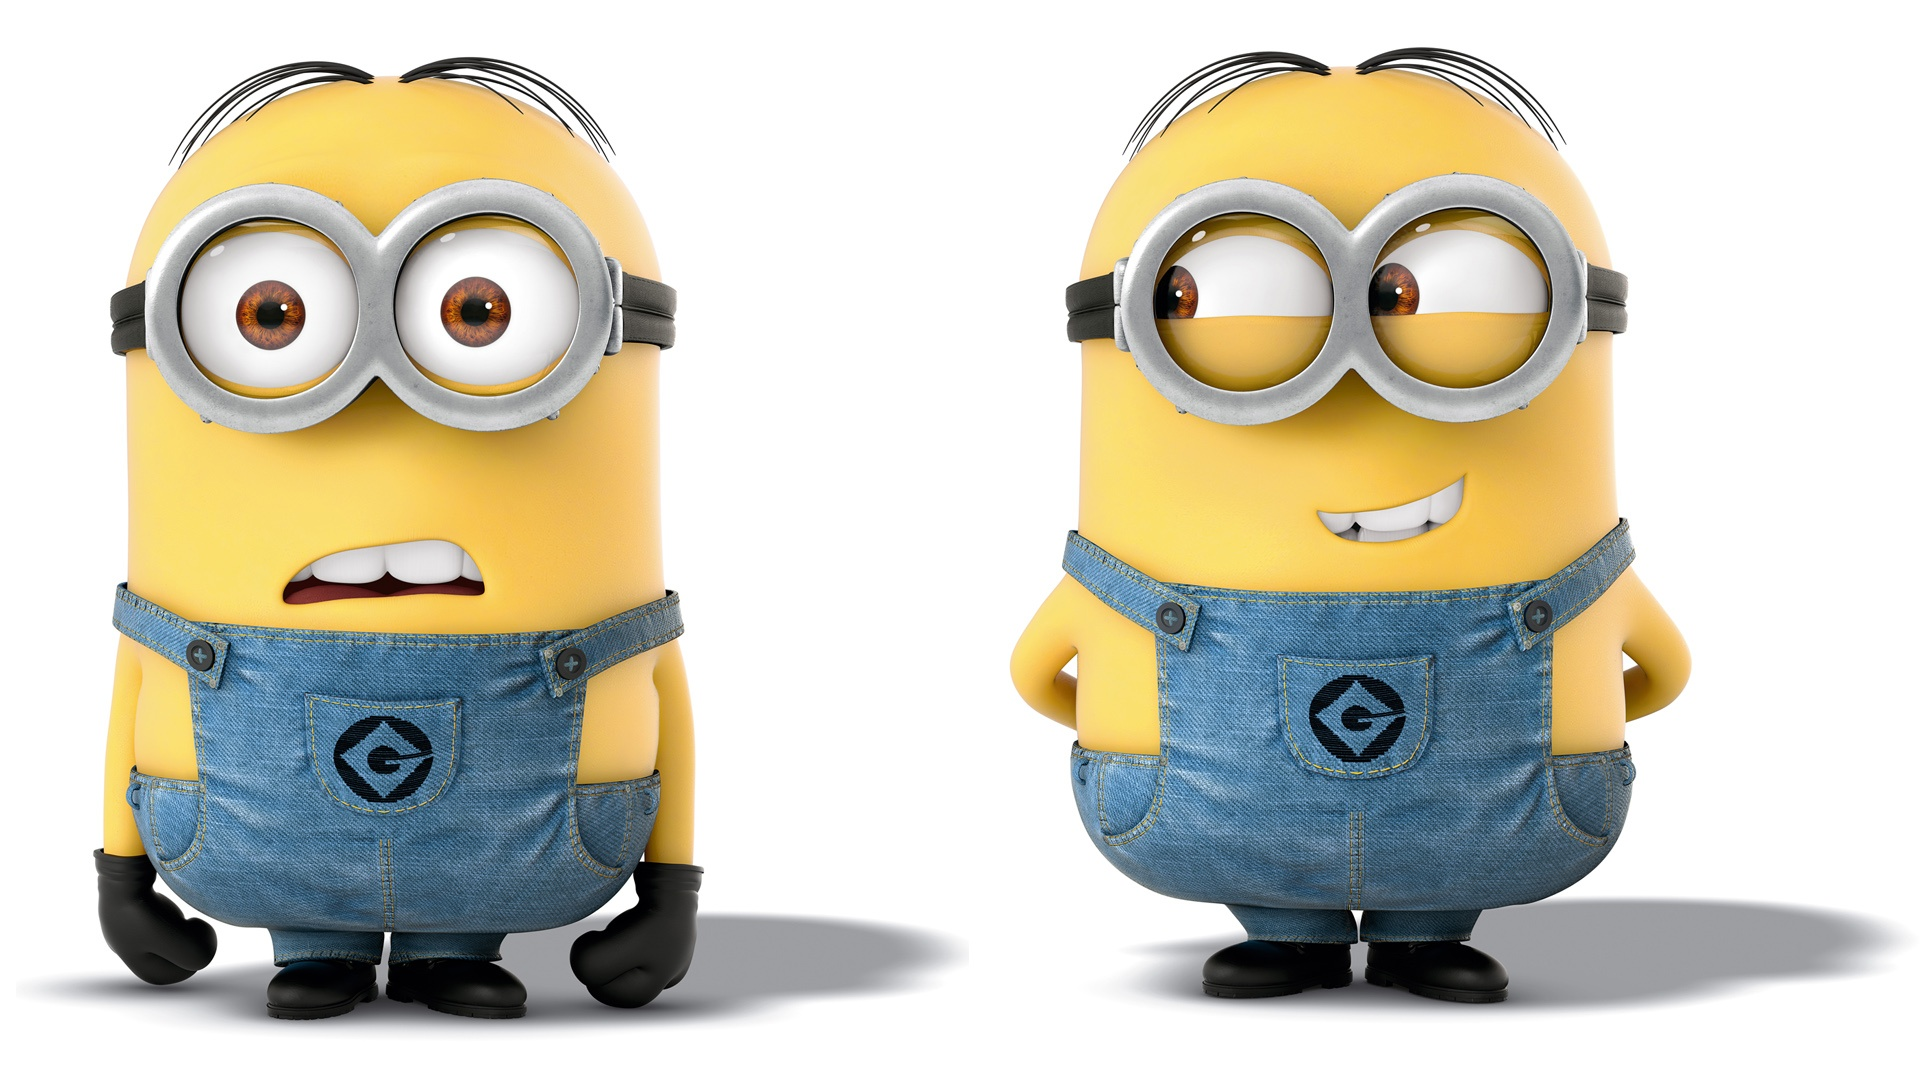 minions (2015): animated film hd wallpapers | volganga